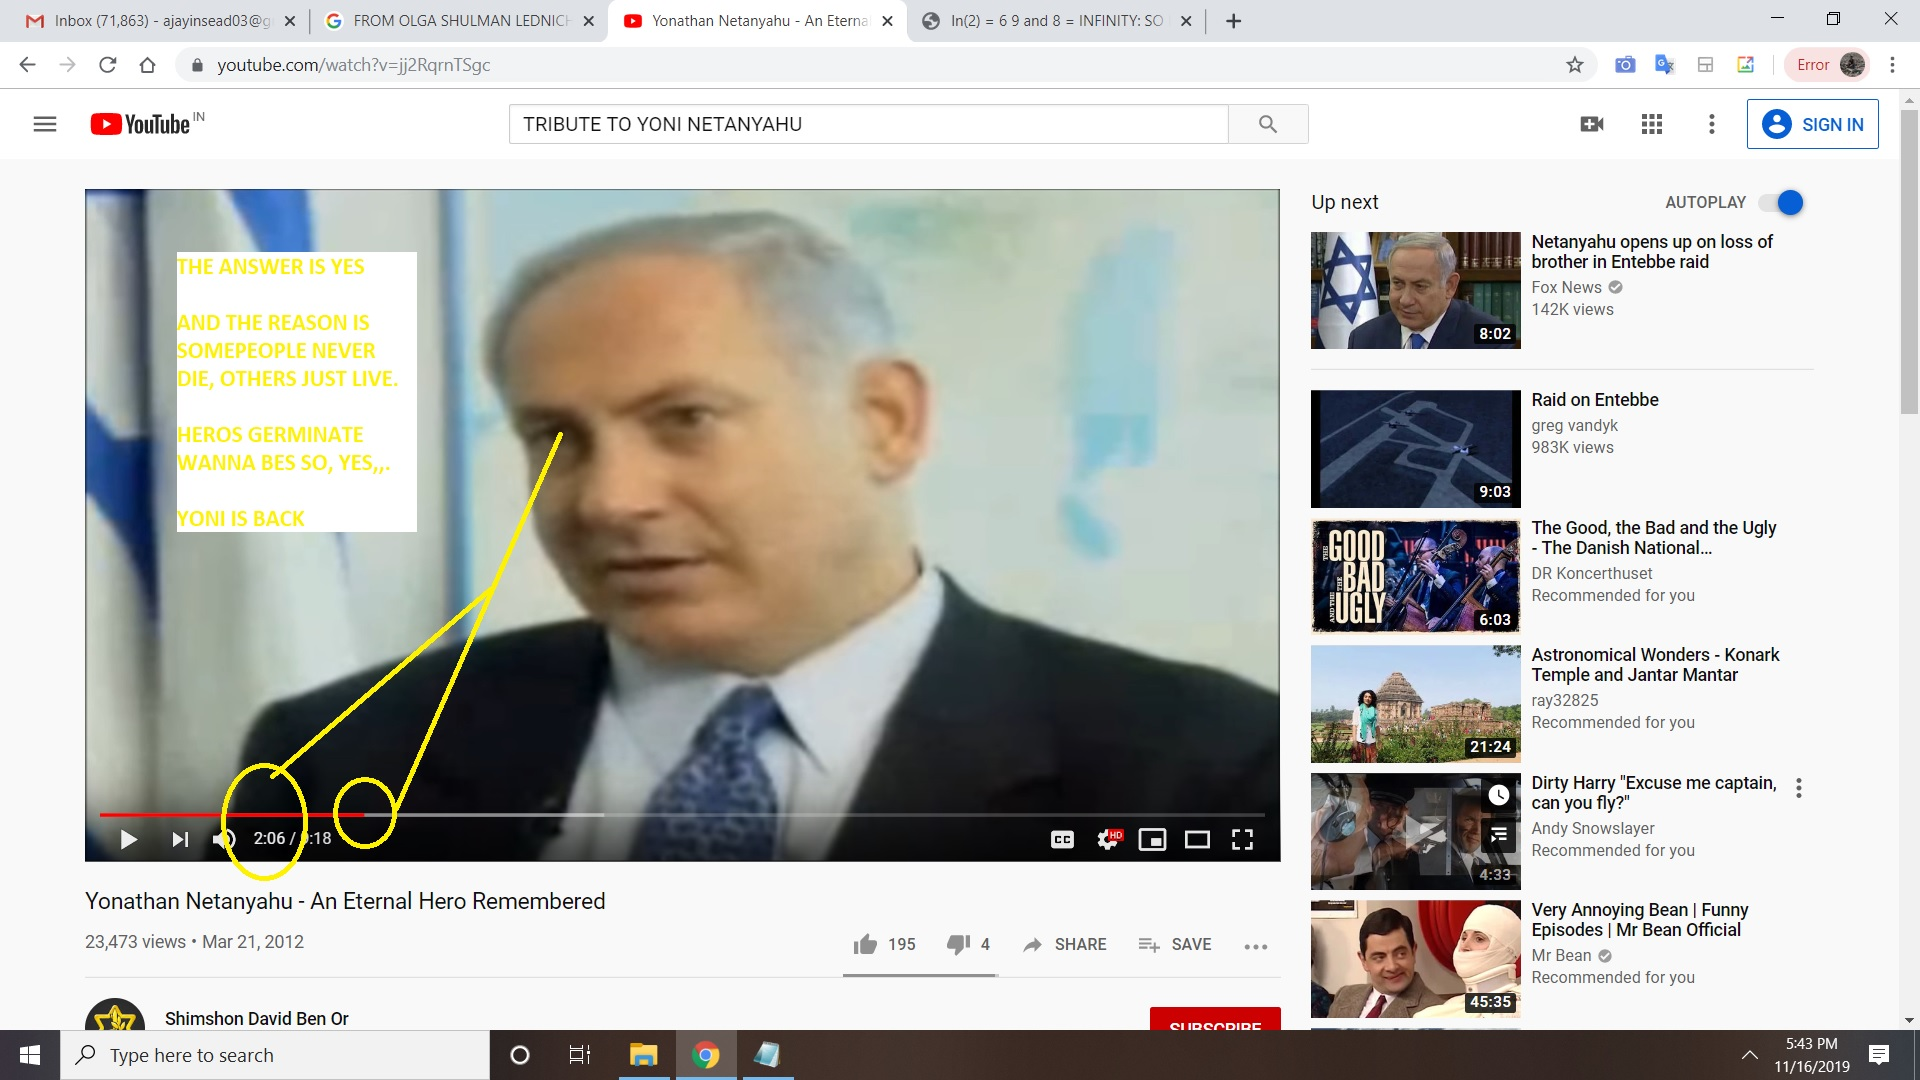 YONI NETANYAHU BIBI NETANYAHU IDDO NETANYAHU YES THE ANSWEER IS YES. AND THE NUMBER IS 206 BUBBA NOWS MY NUMBER WAS 106 REGARDS ME AJAY